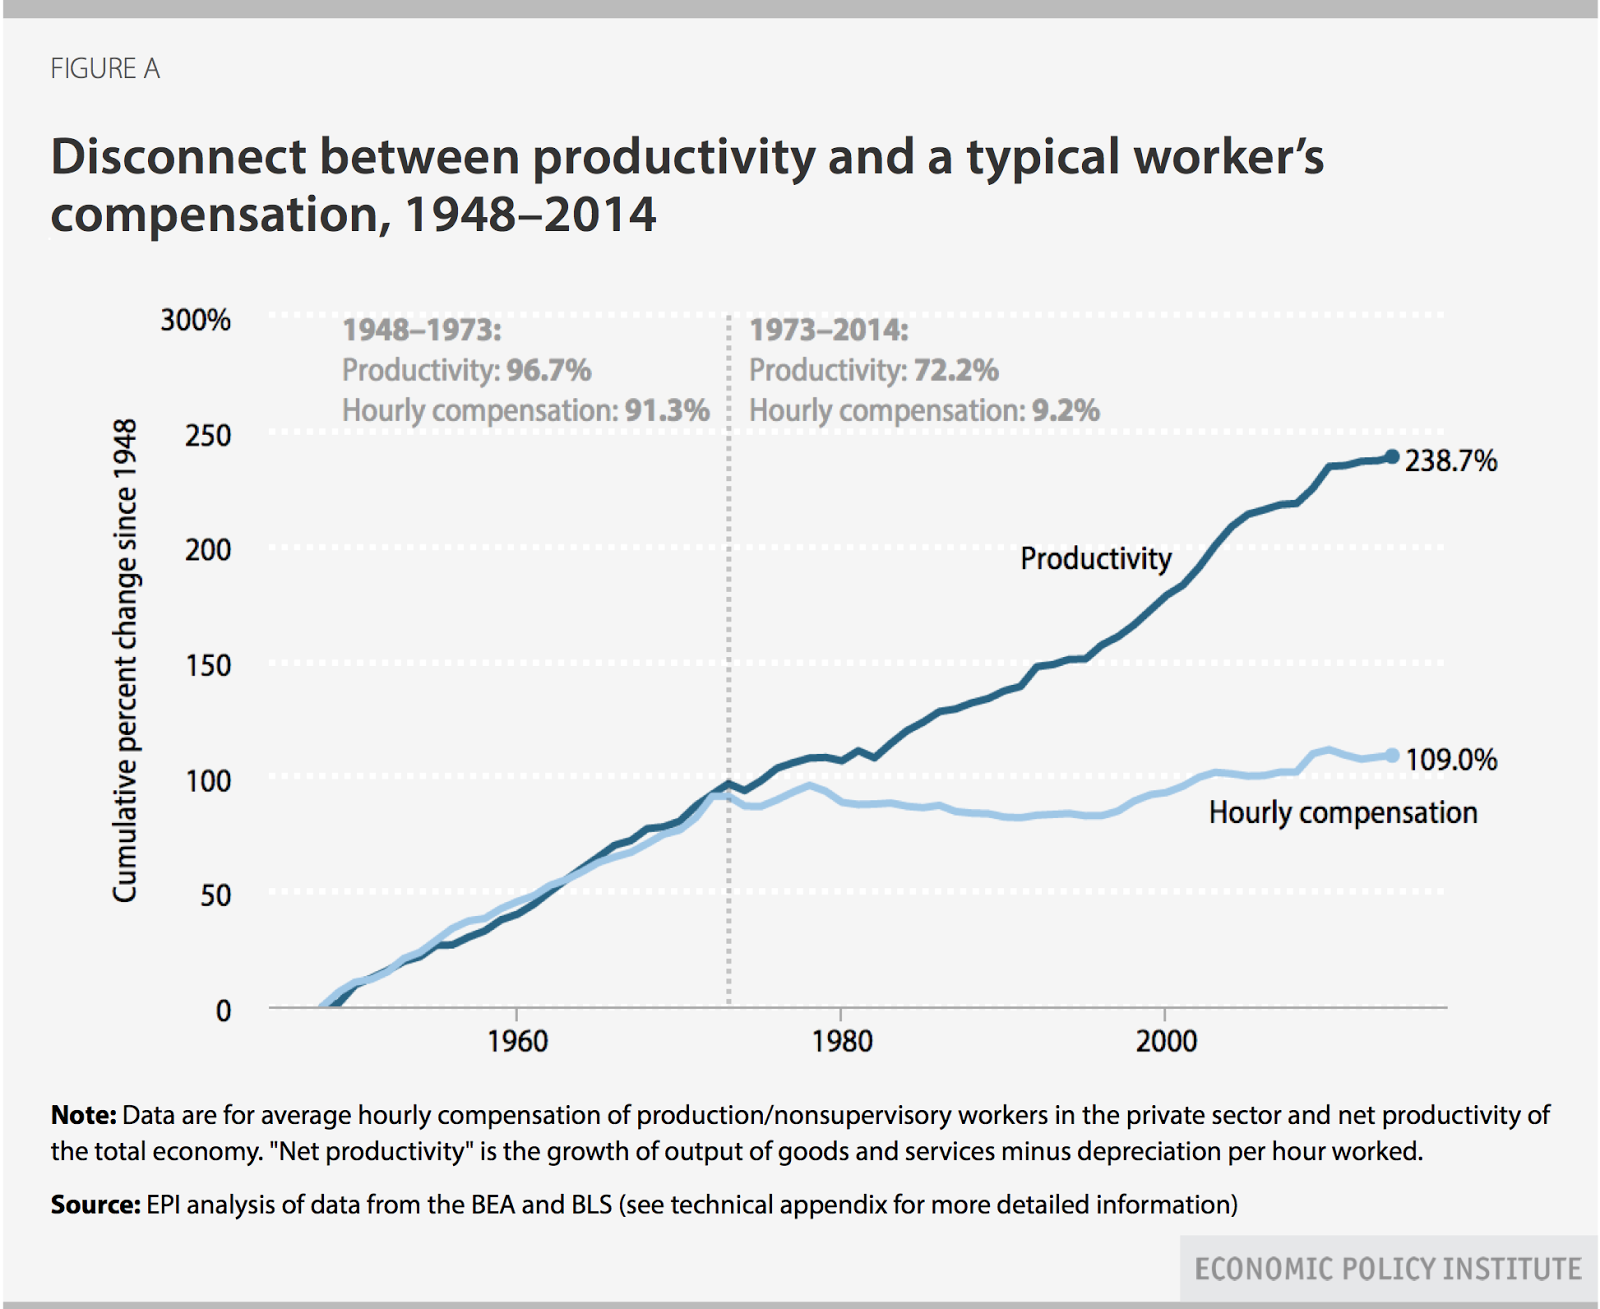 EPI: FIGURE A - Disconnect between productivity and a typical worker's compensation, 1948-2014